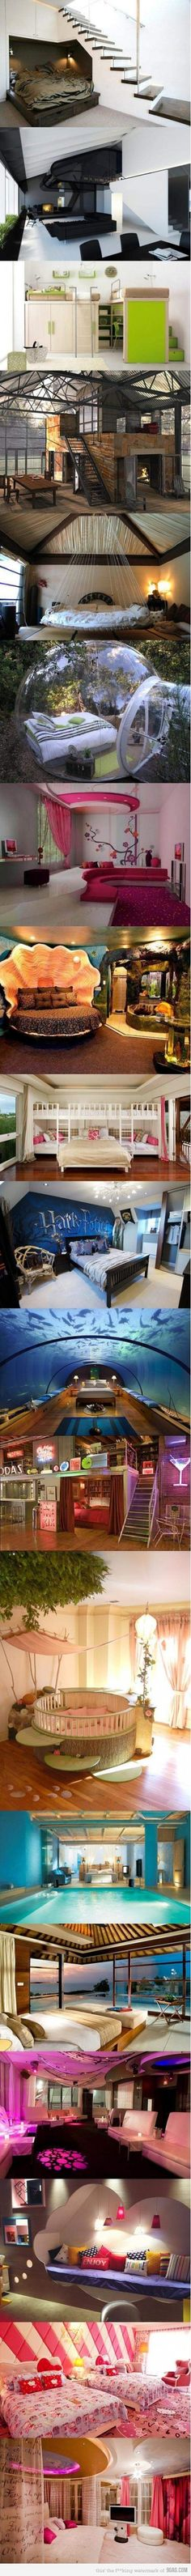 Dream Bedrooms - Some of these would be rather cool, most not, but the first few for sure and the under the aquarium one would be cool in theory, dont think i could bring myself to sleep there though.